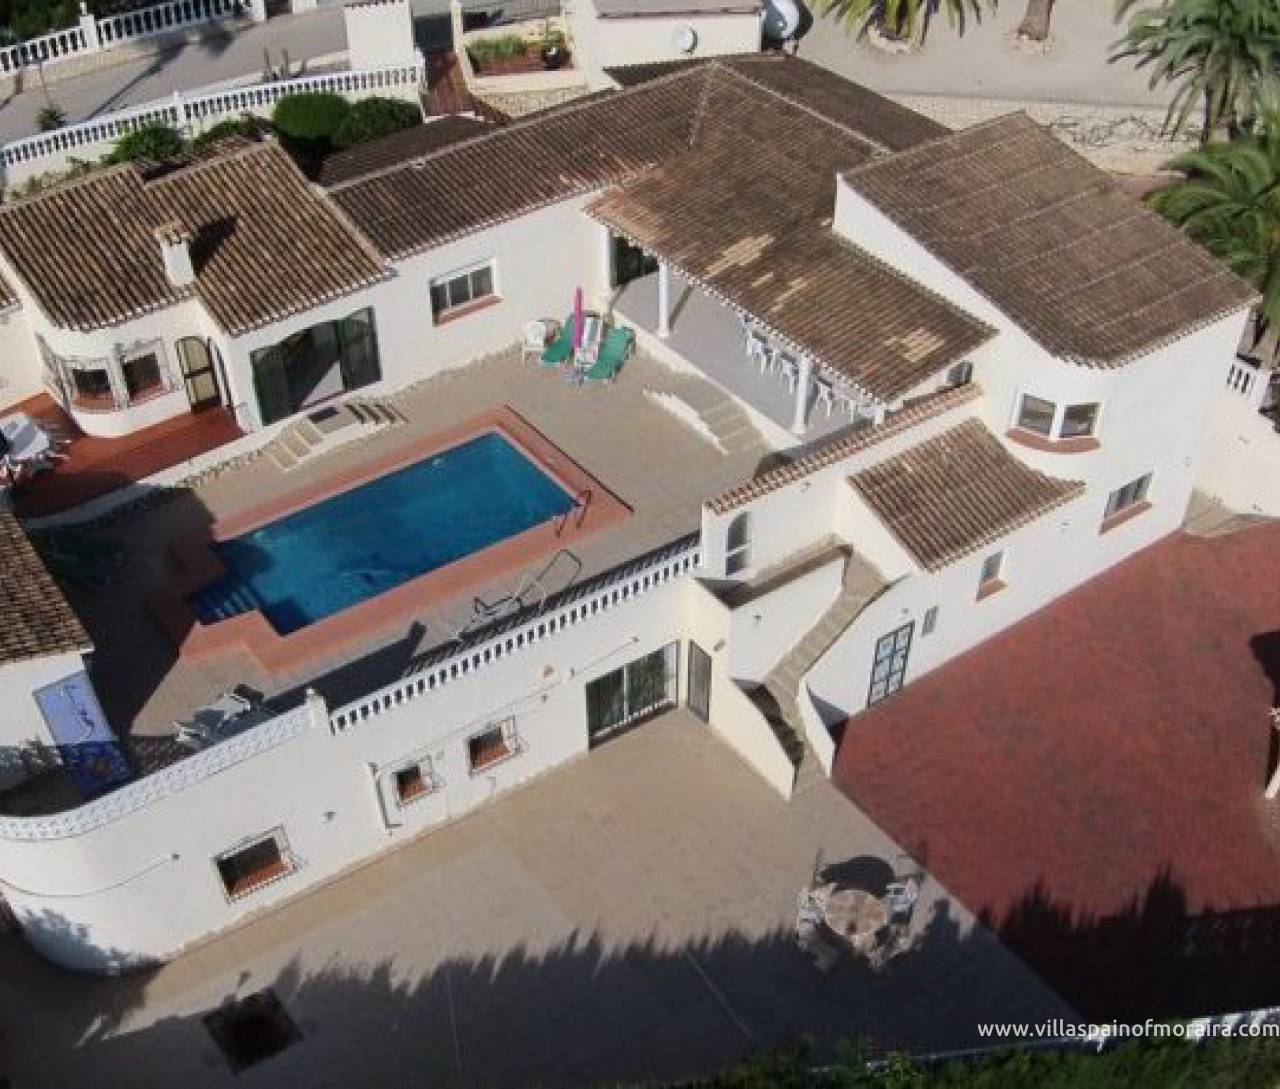 Villa for sale Moraira Verde Pino